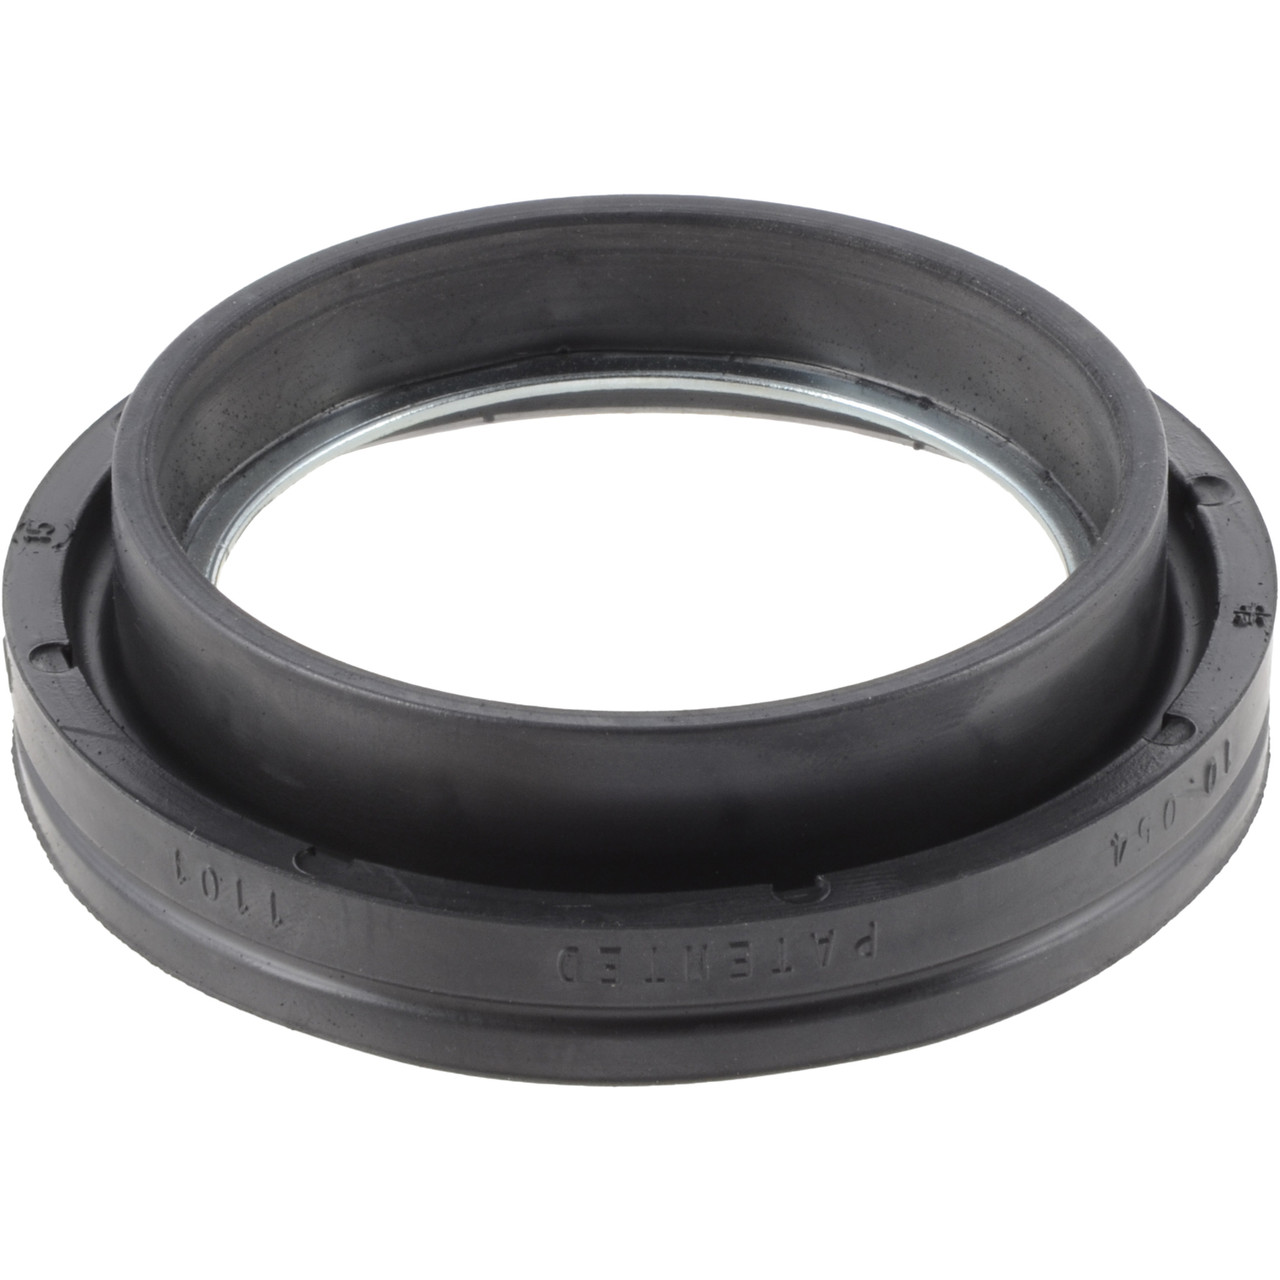 2000 ford f250 front axle dust seal